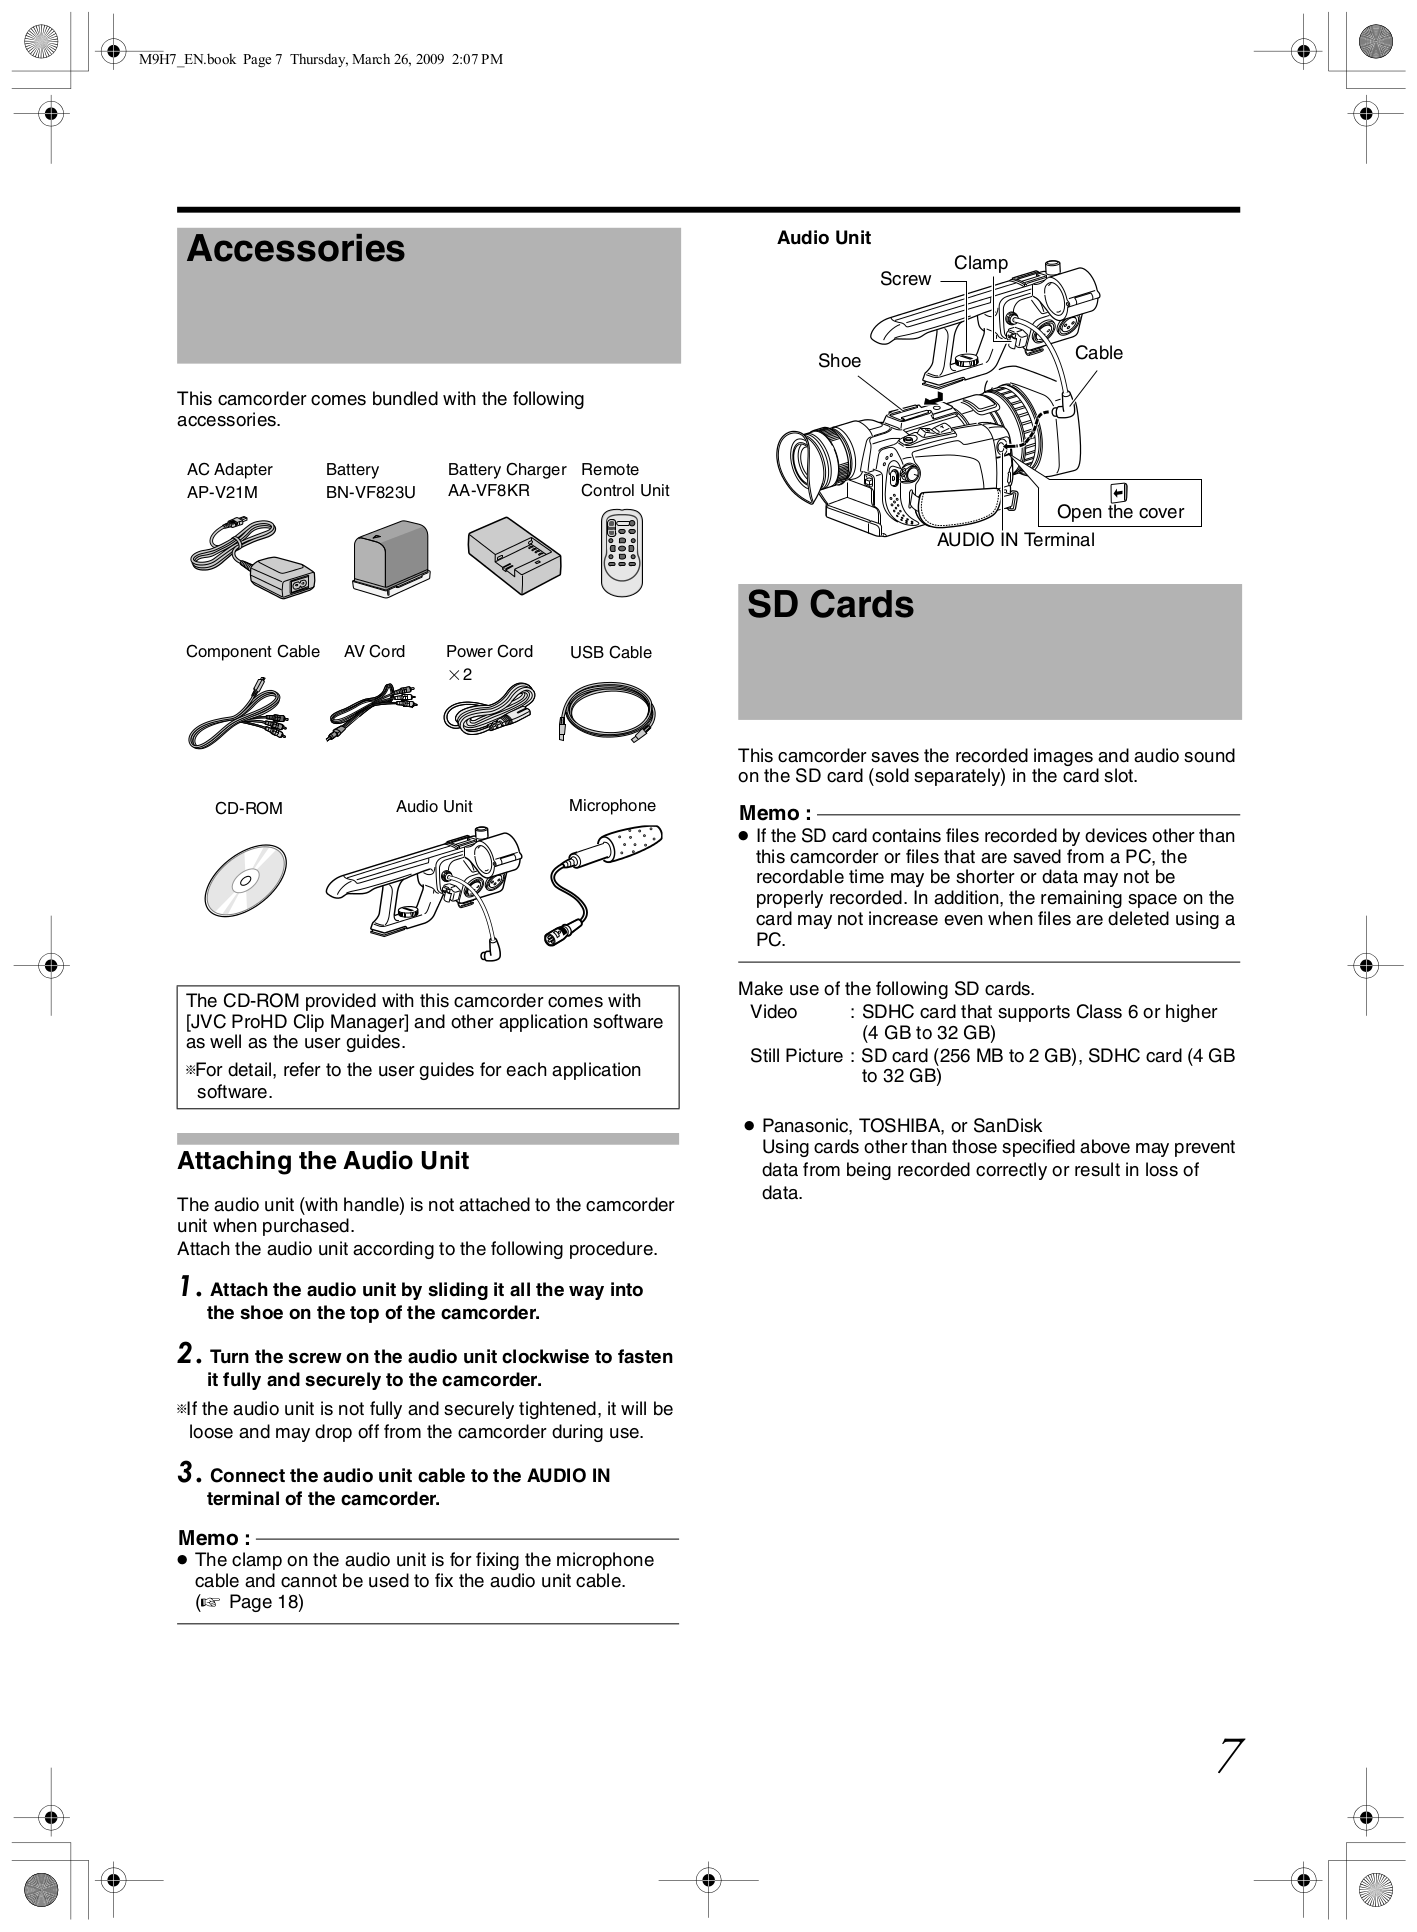 GY HD100 MANUAL PDF